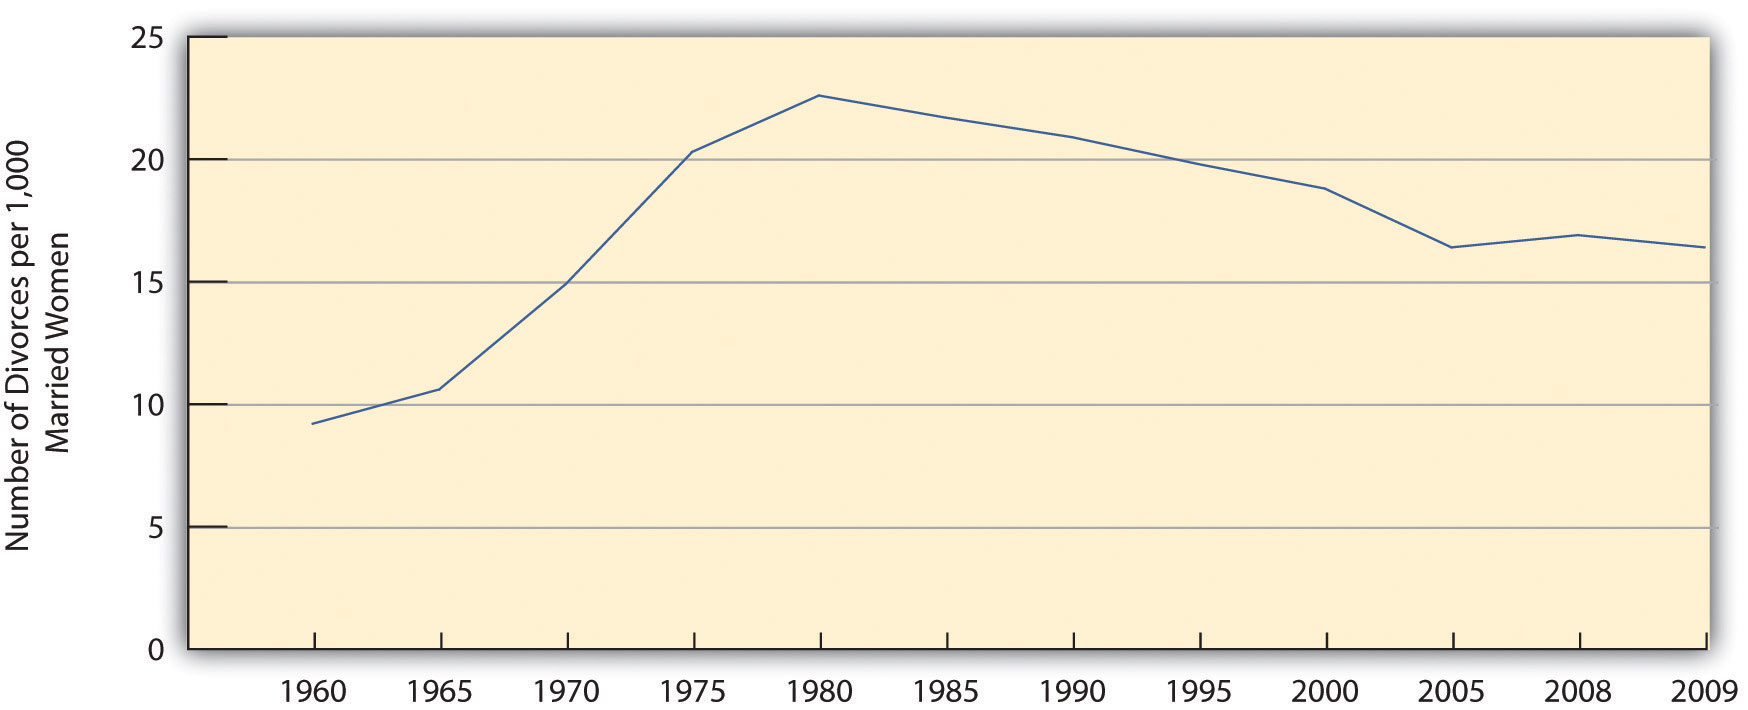 The number of divorces per 1,000 married women aged 15 or older from 1960 to 2009, increased drastically from 1960 to 1980, but since then has steadily declined